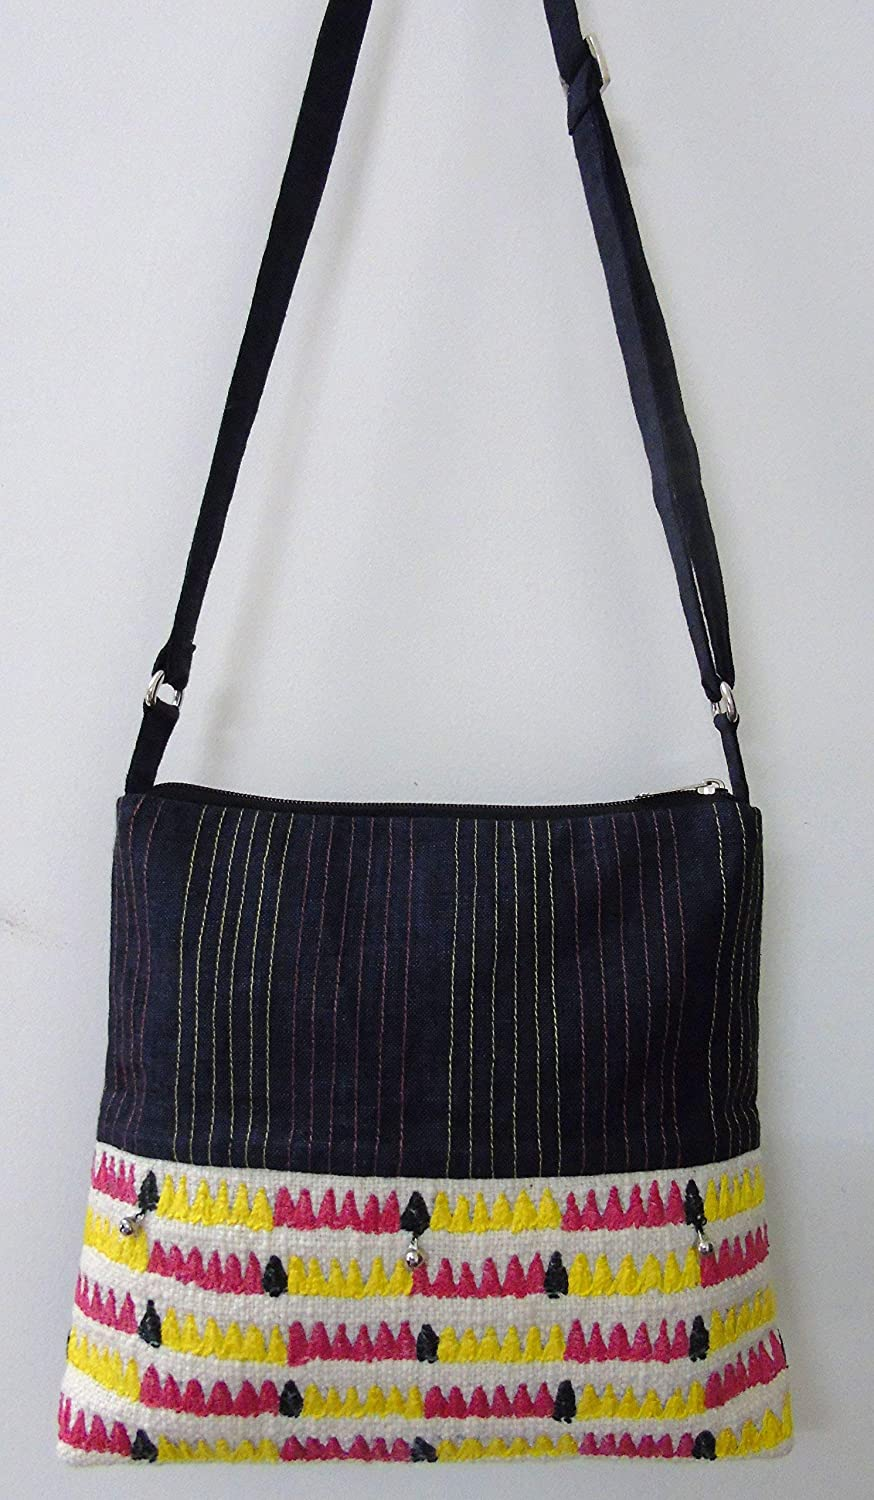 Panigha Handmade India Cotton Cross body/Sling Bag with multi color embroidery